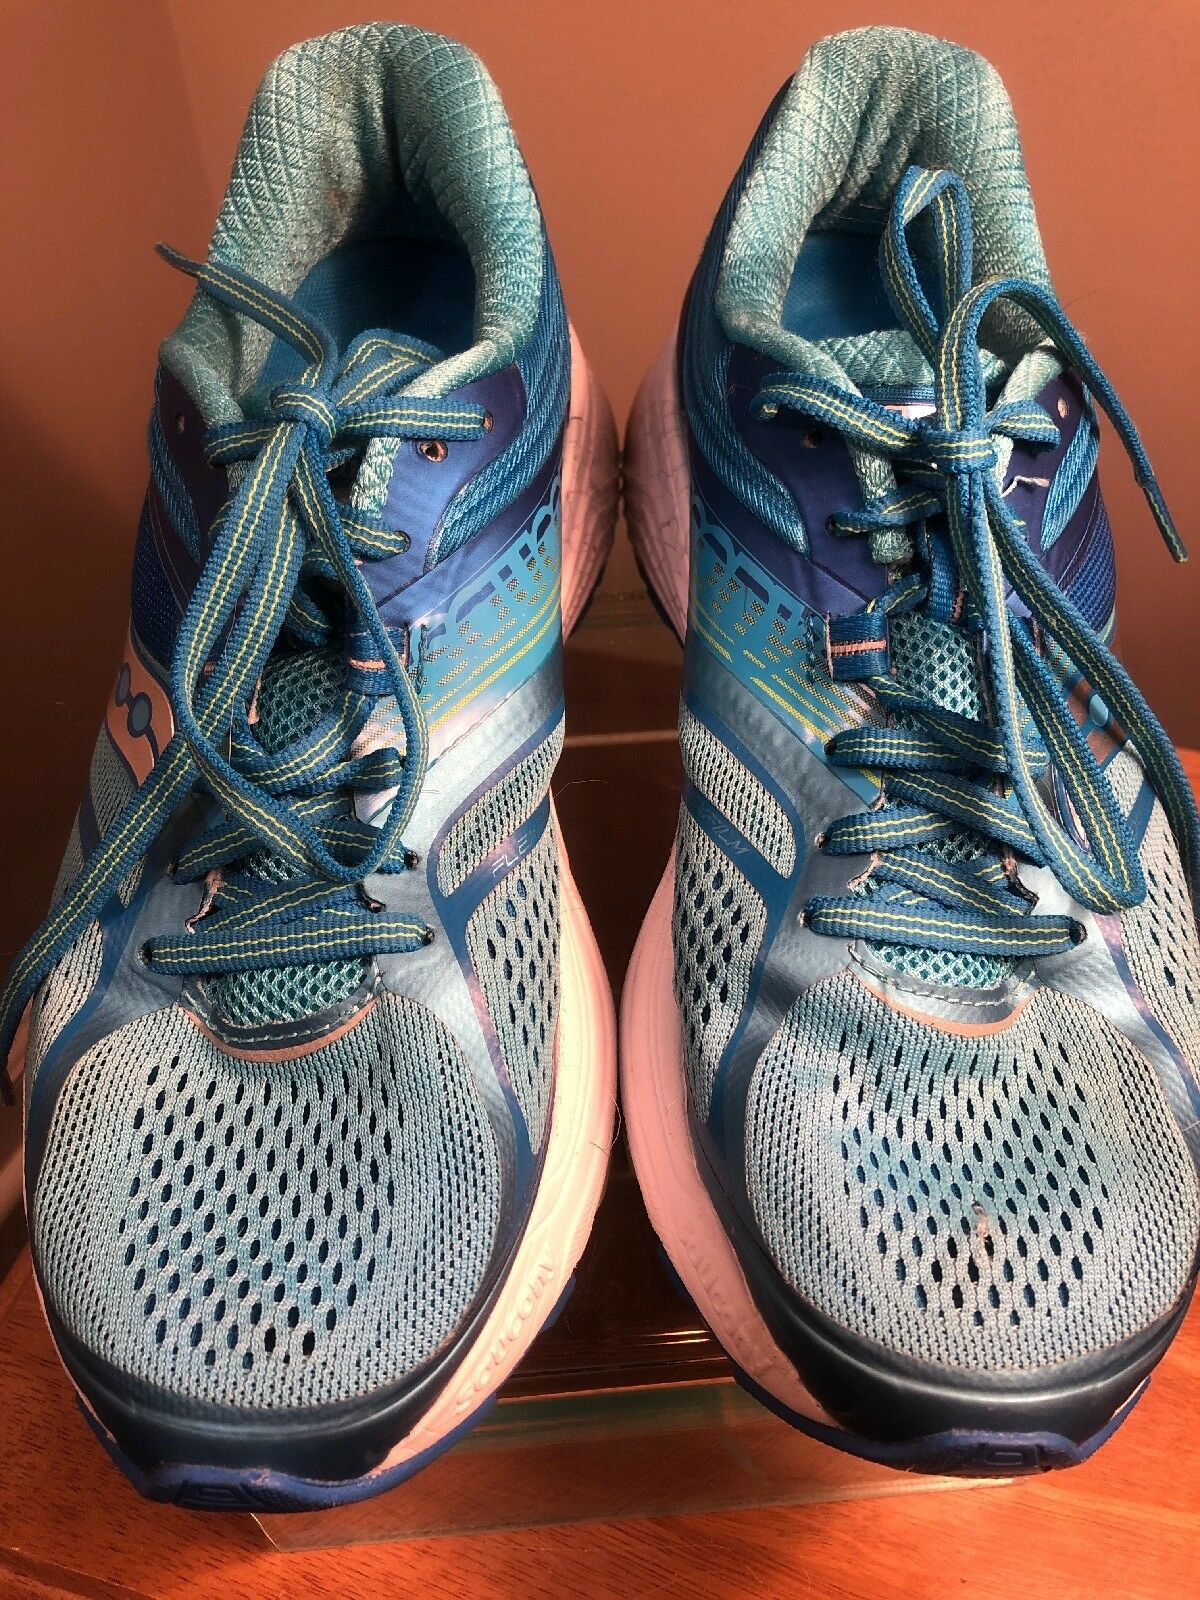 Saucony Womens Guide 10 Light bluee bluee Running shoes Size 7.5 (89595)